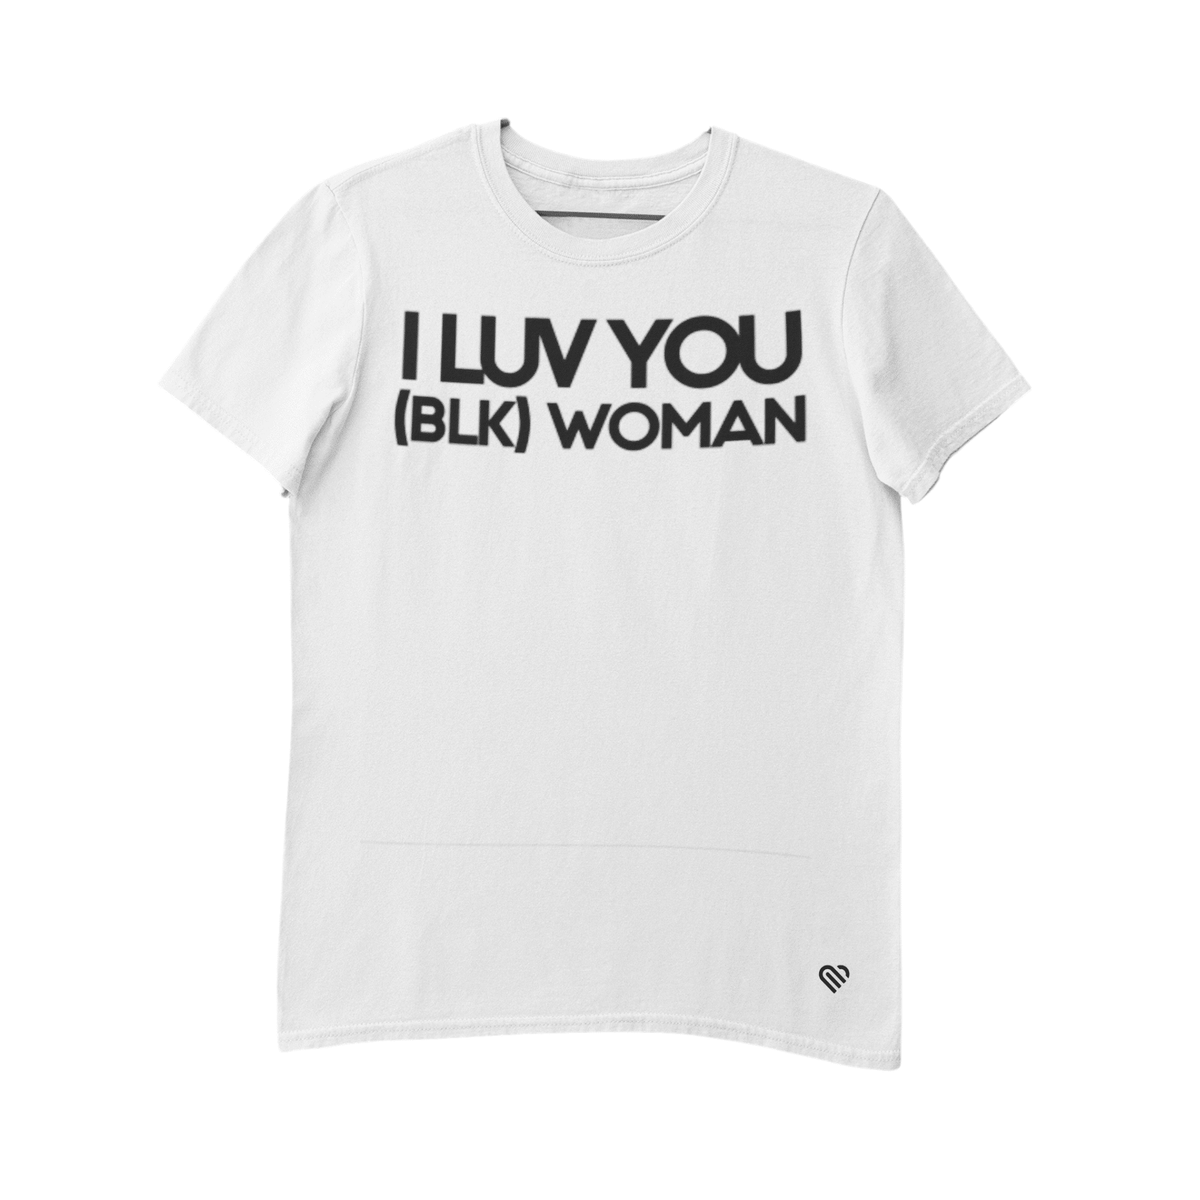 I LUV YOU (BLK) WOMAN T-Shirt